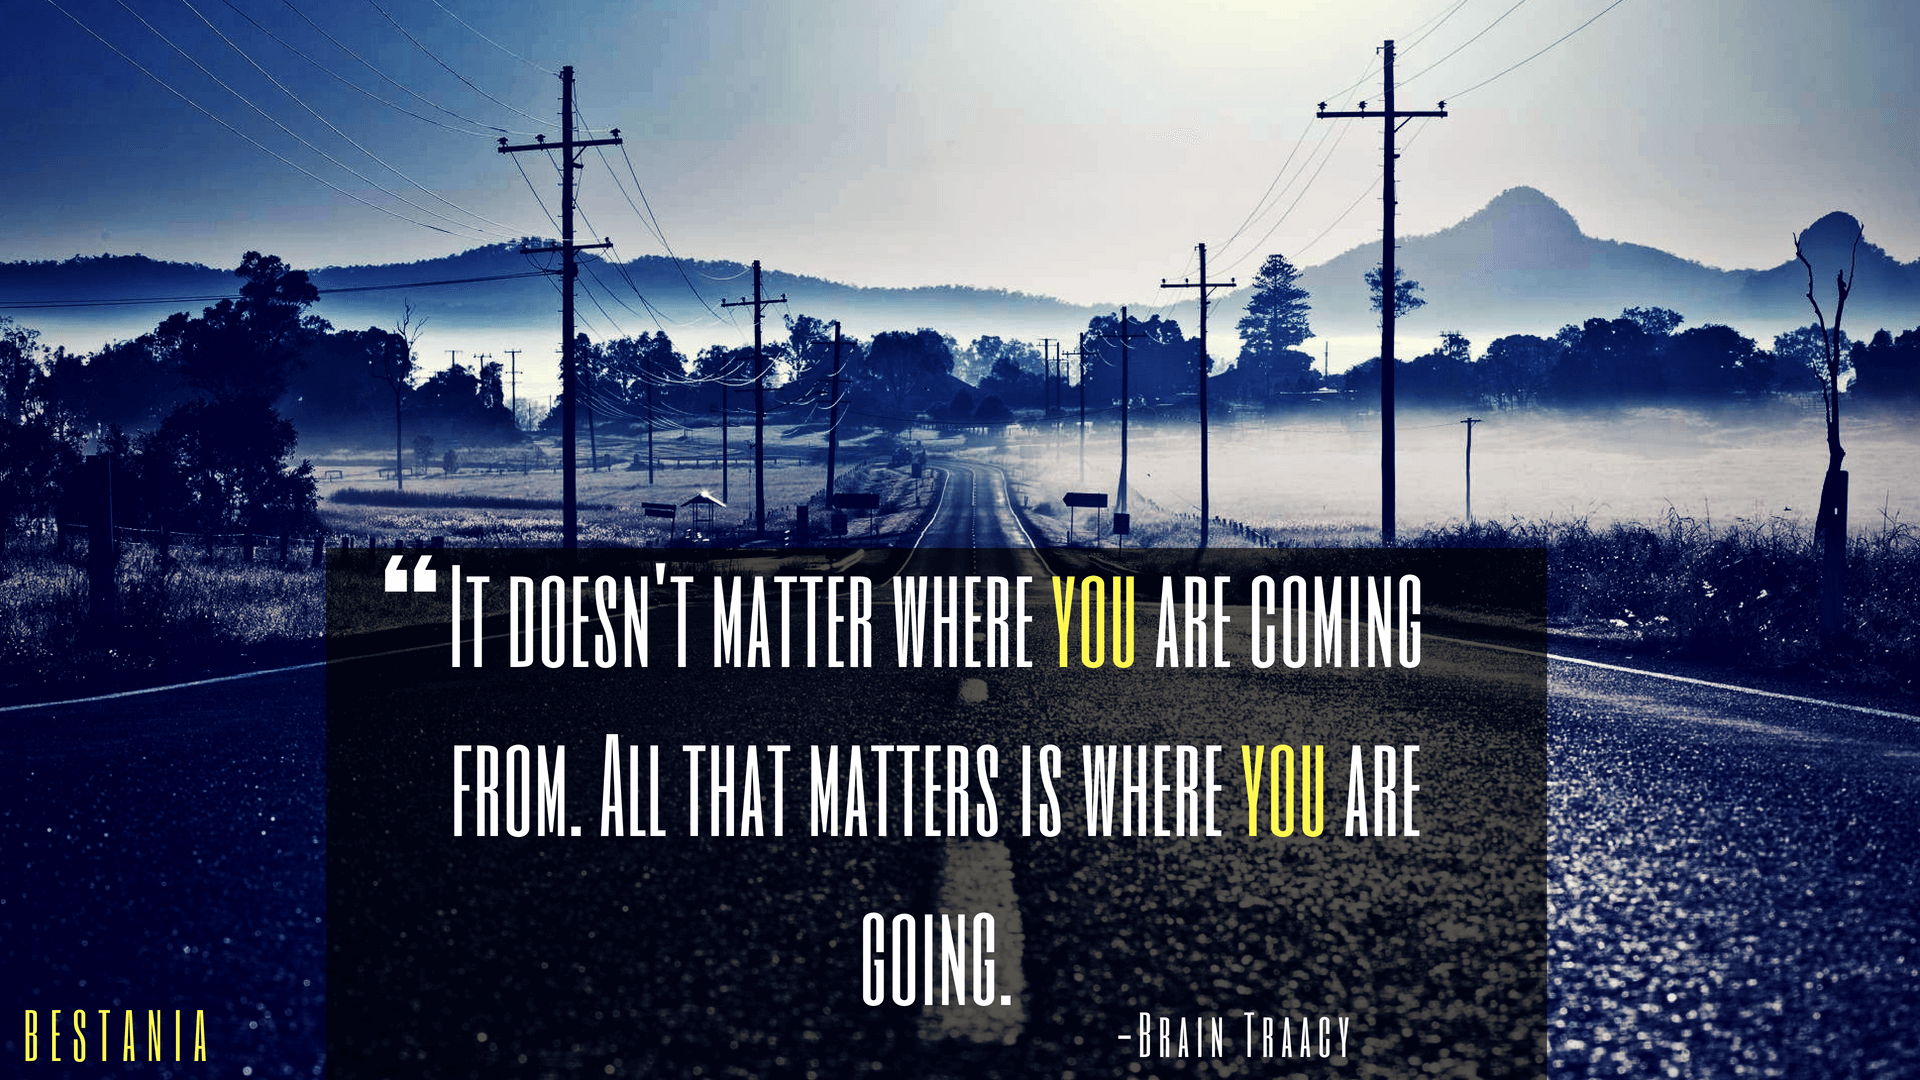 It doesn't matter where you are coming from. All that matters is where you are going.